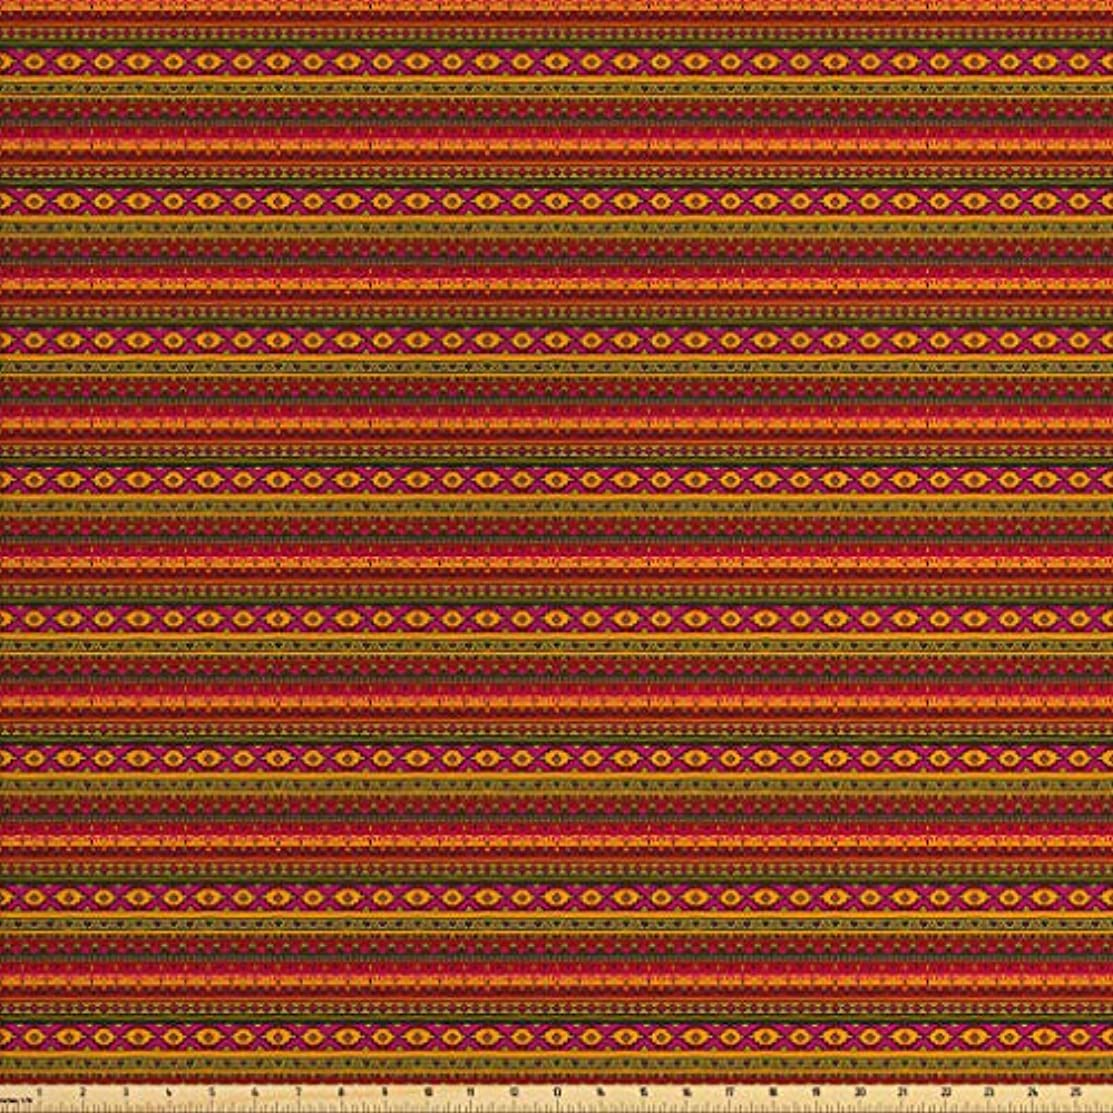 Lunarable Aztec Fabric by The Yard, South American Abstract Borders Mexican Peruvian Folk Art Elements Boho Doodle, Decorative Fabric for Upholstery and Home Accents, 3 Yards, Pink Green Orange